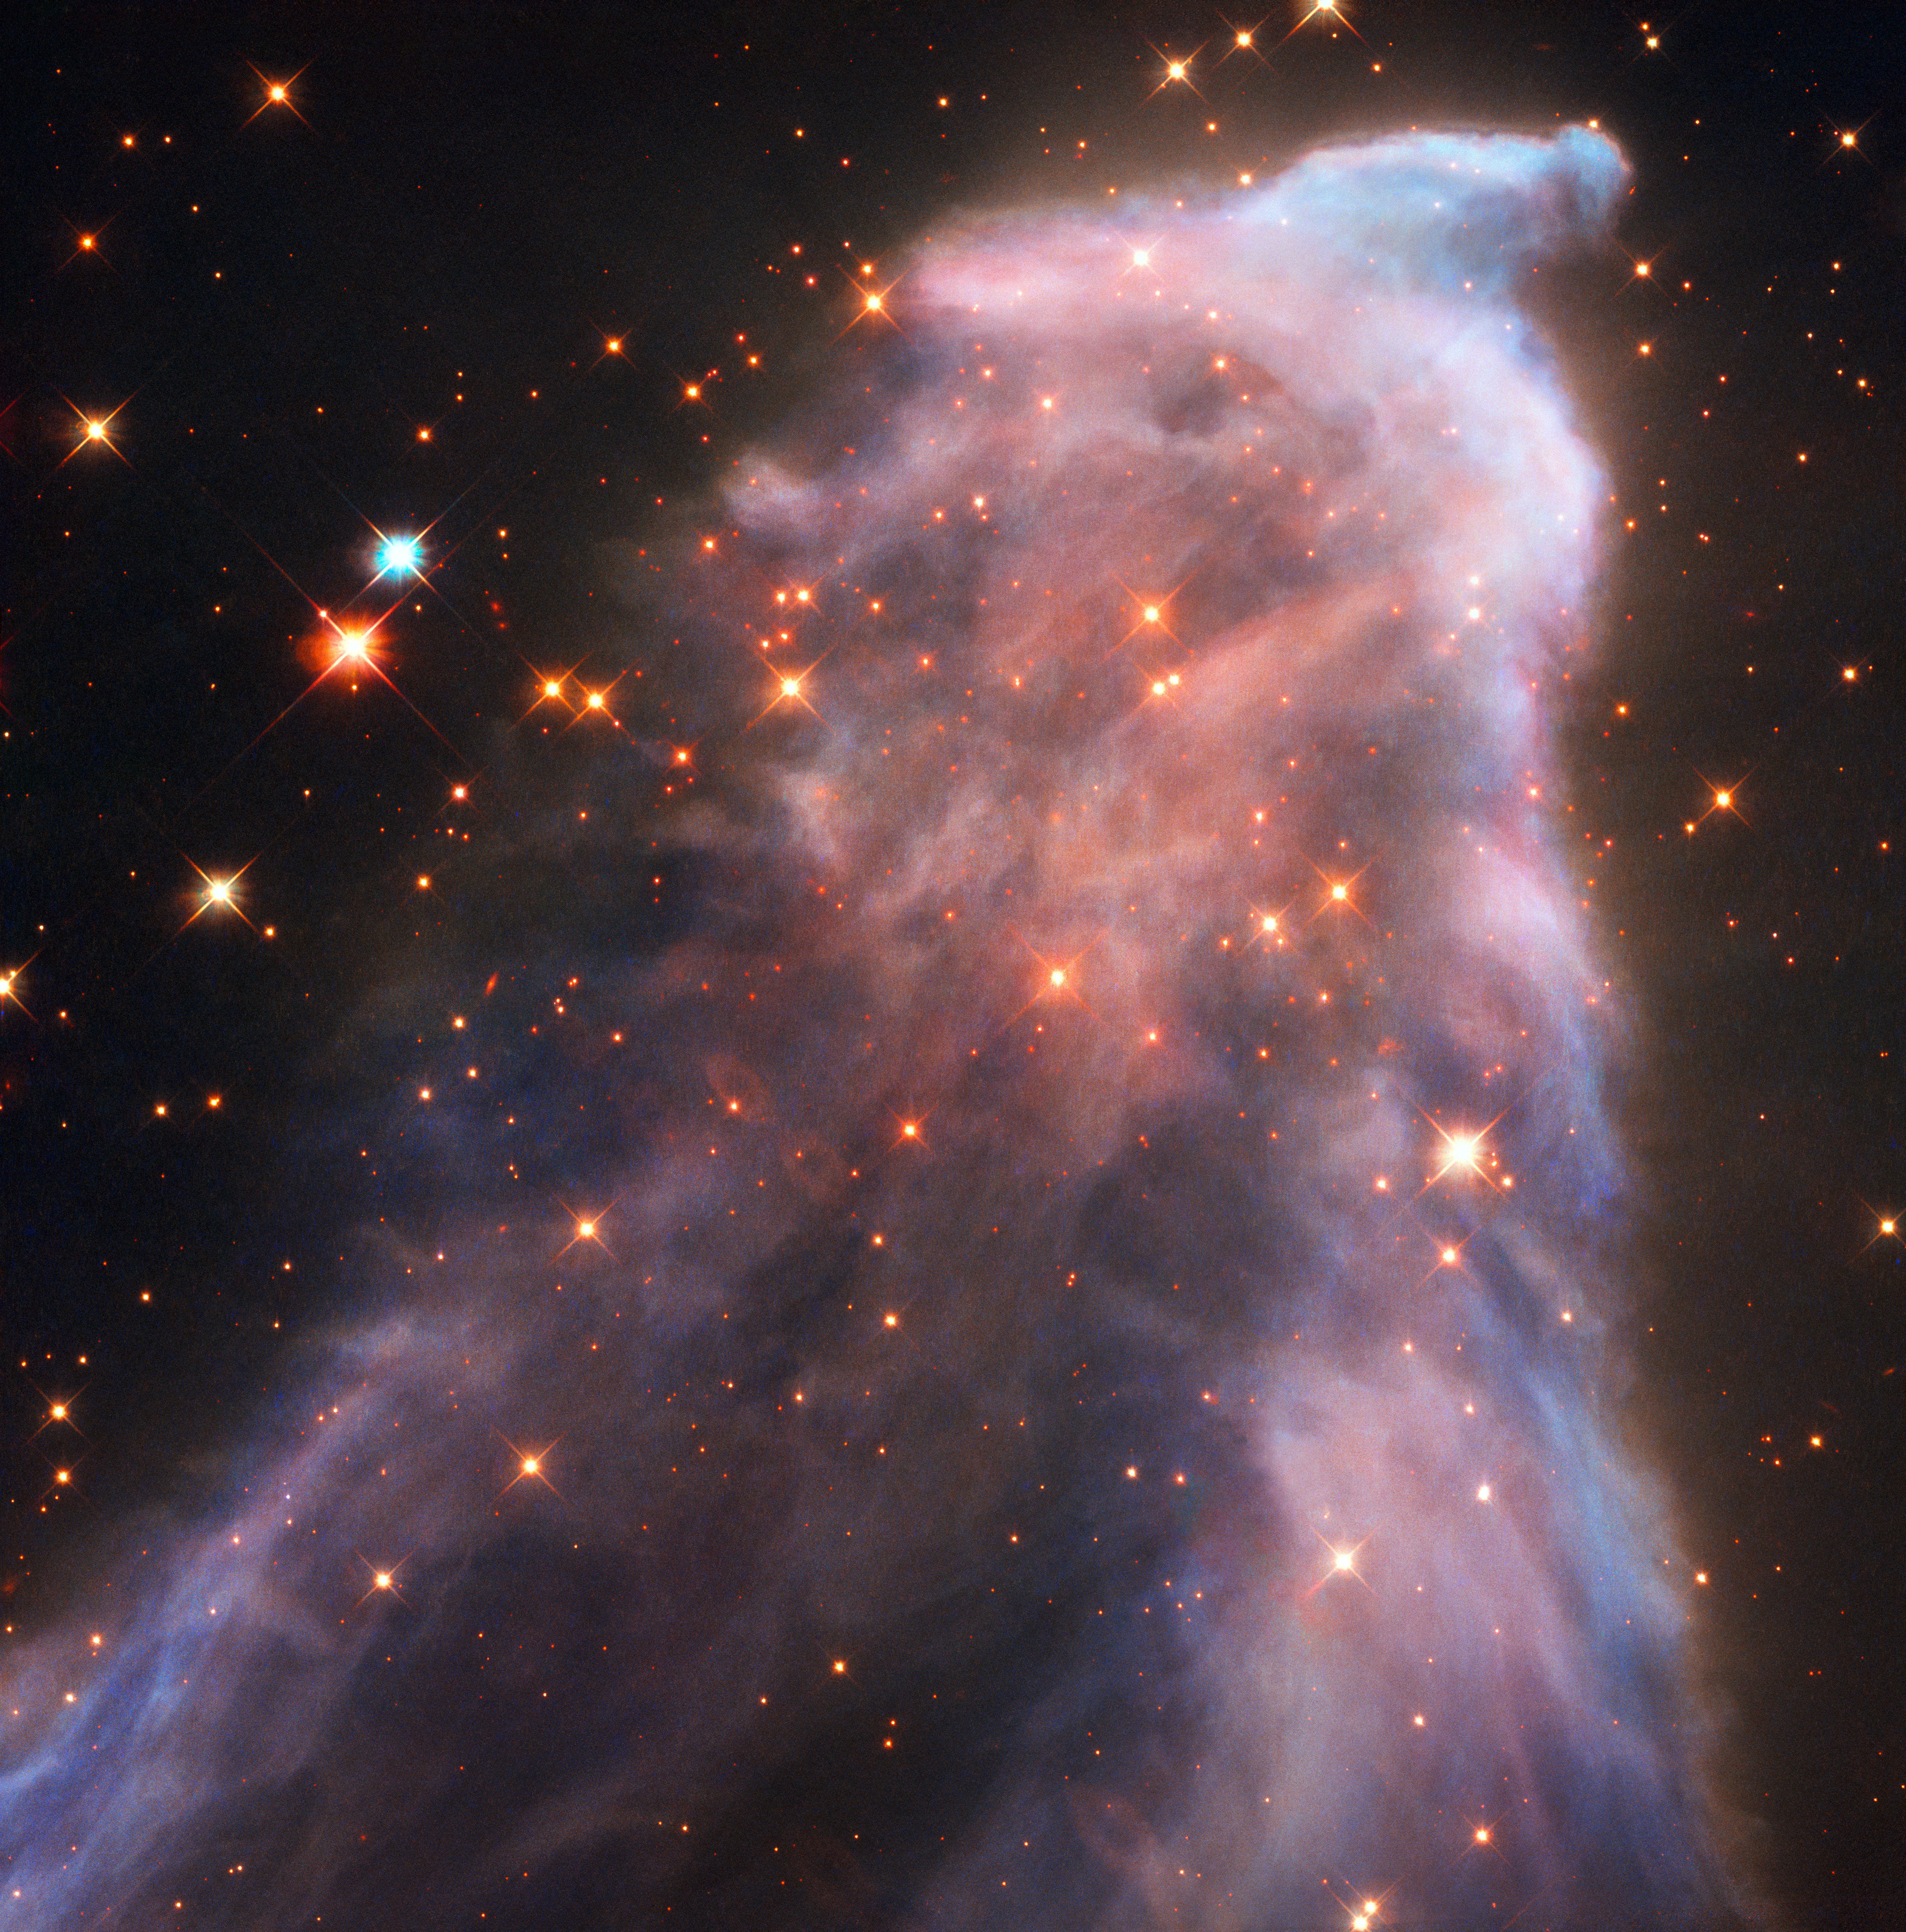 The Hubble Space Telescope captures new photos of the Ghost Nebula.